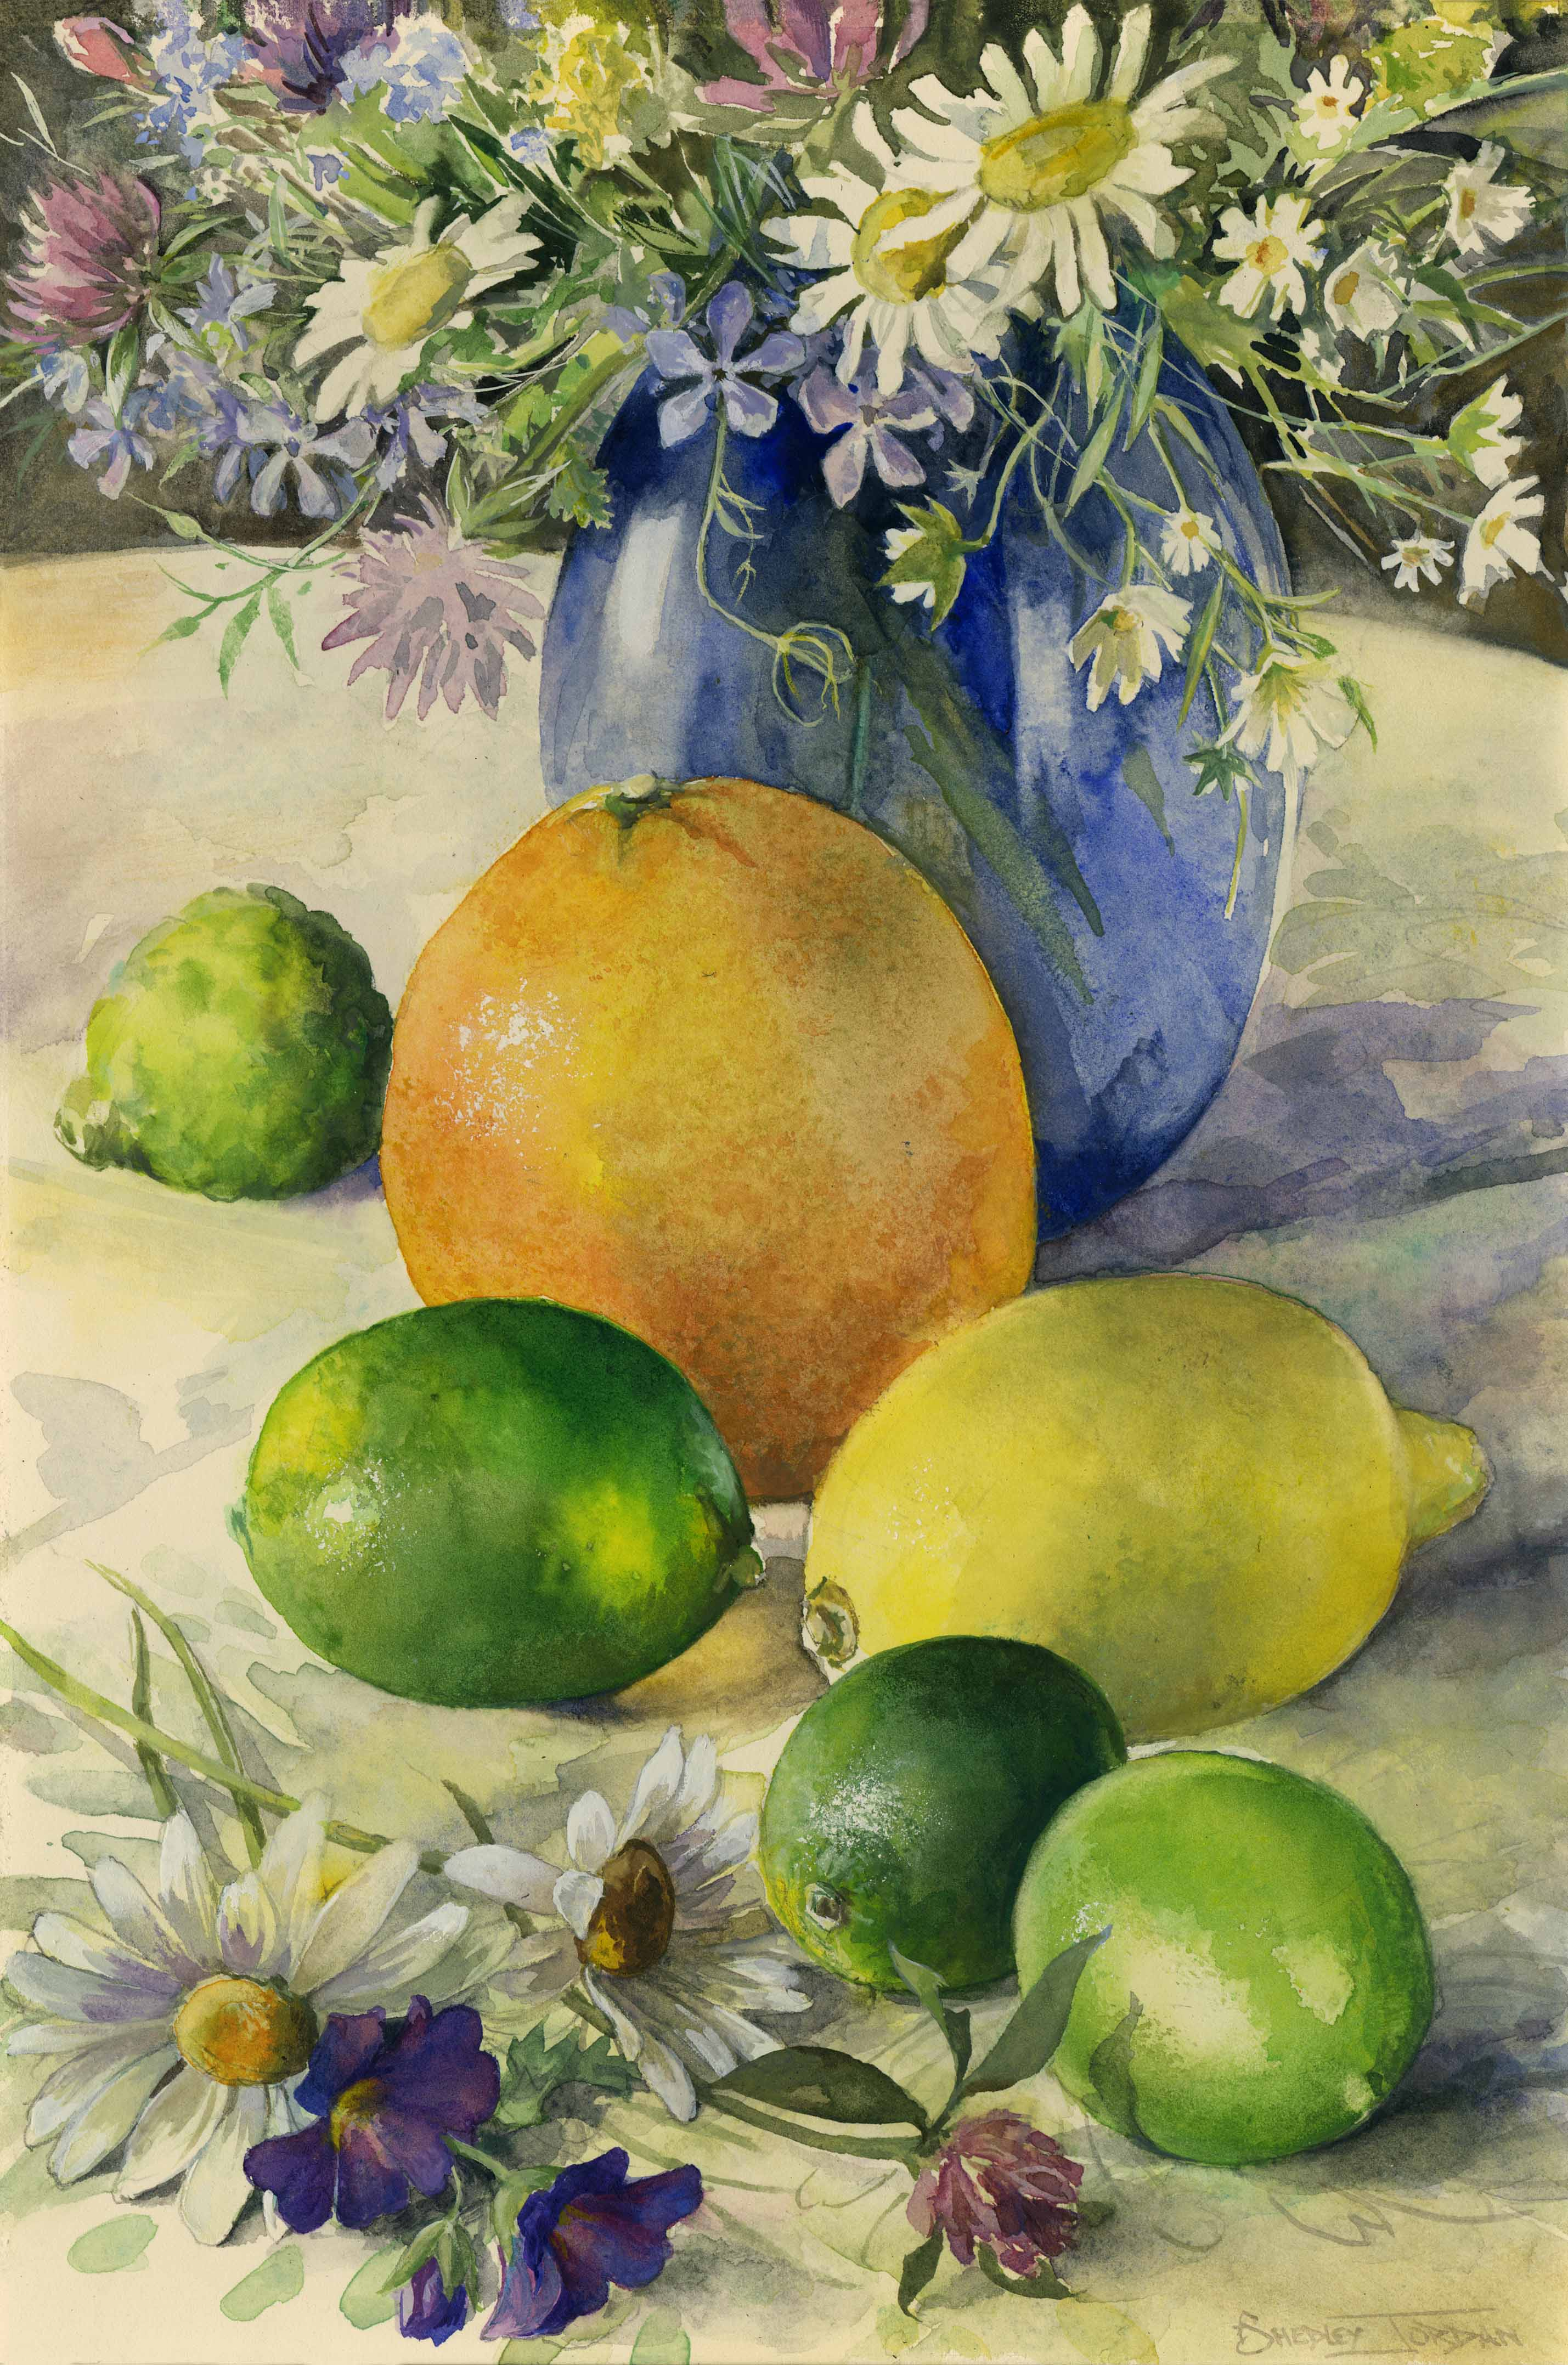 Still Life & Citrus Fruits